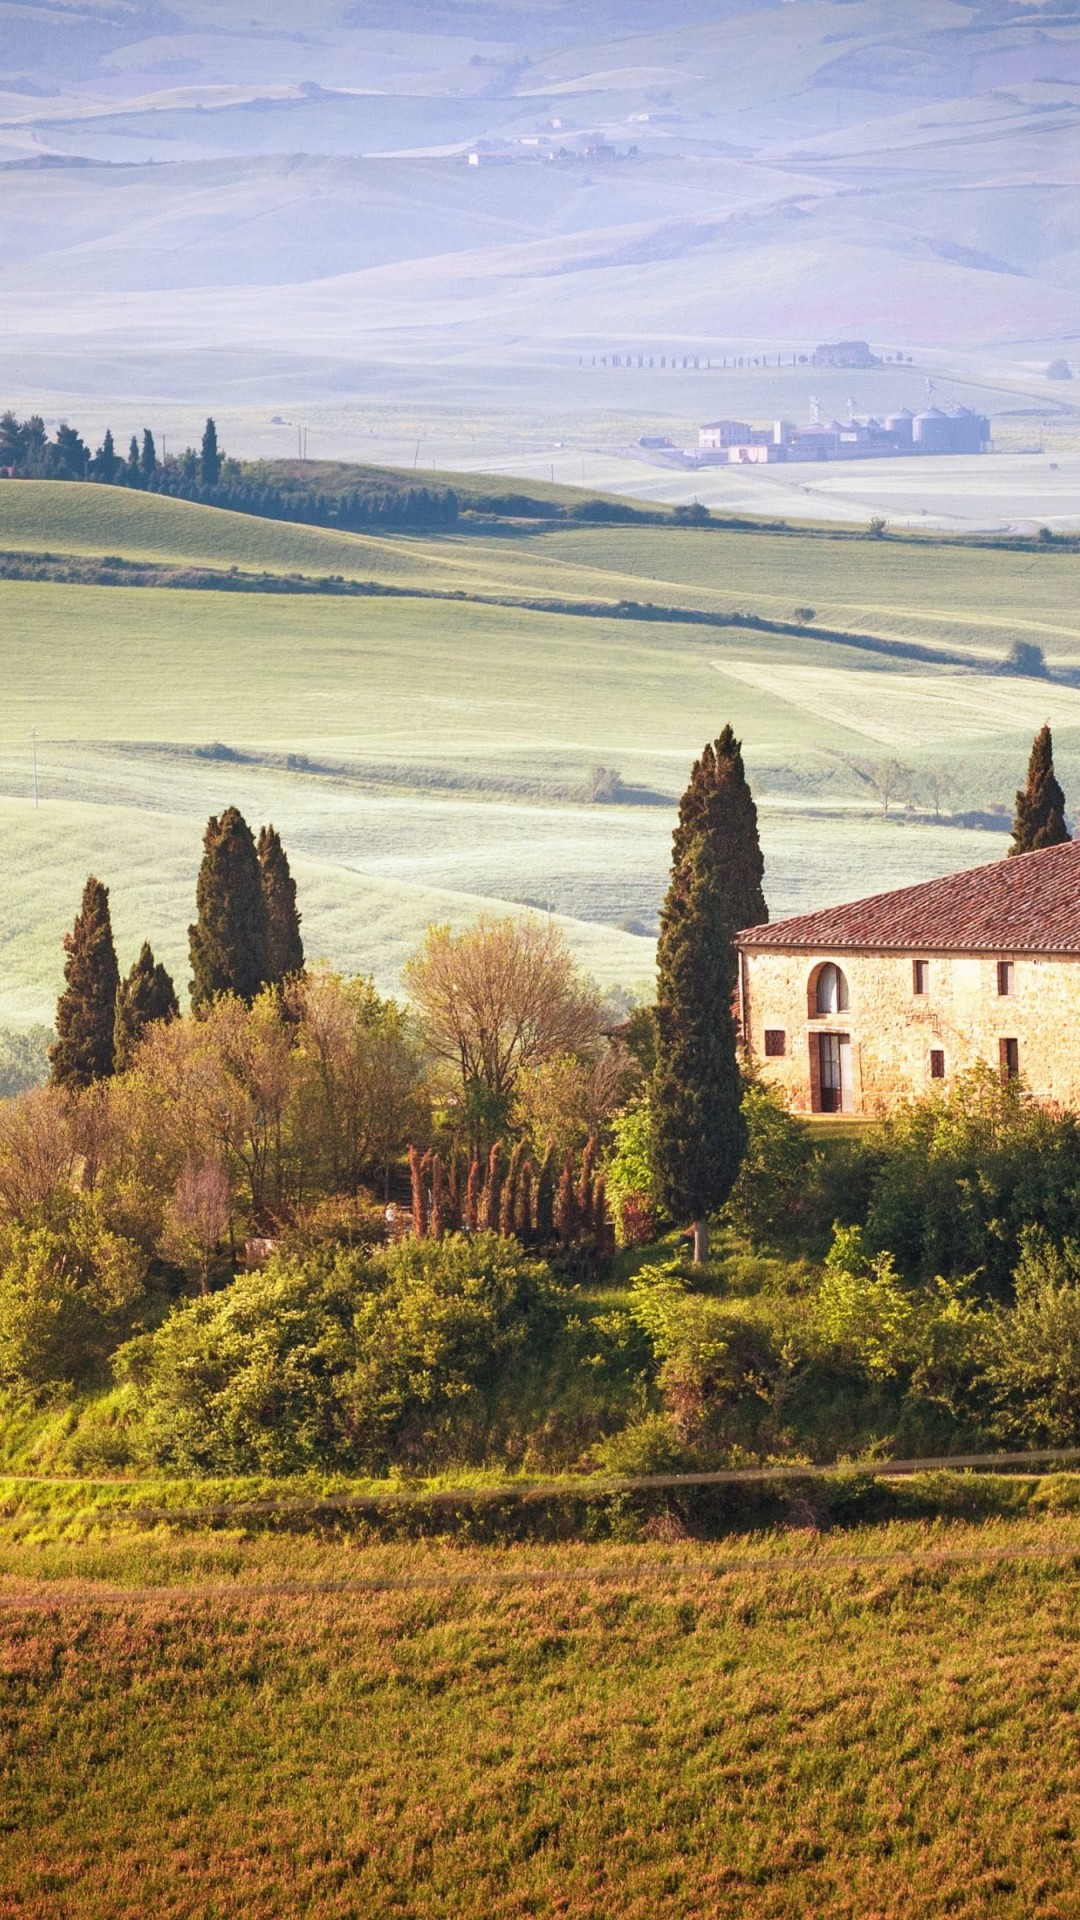 Summer in Tuscany, Italy Wallpaper for SONY Xperia Z3